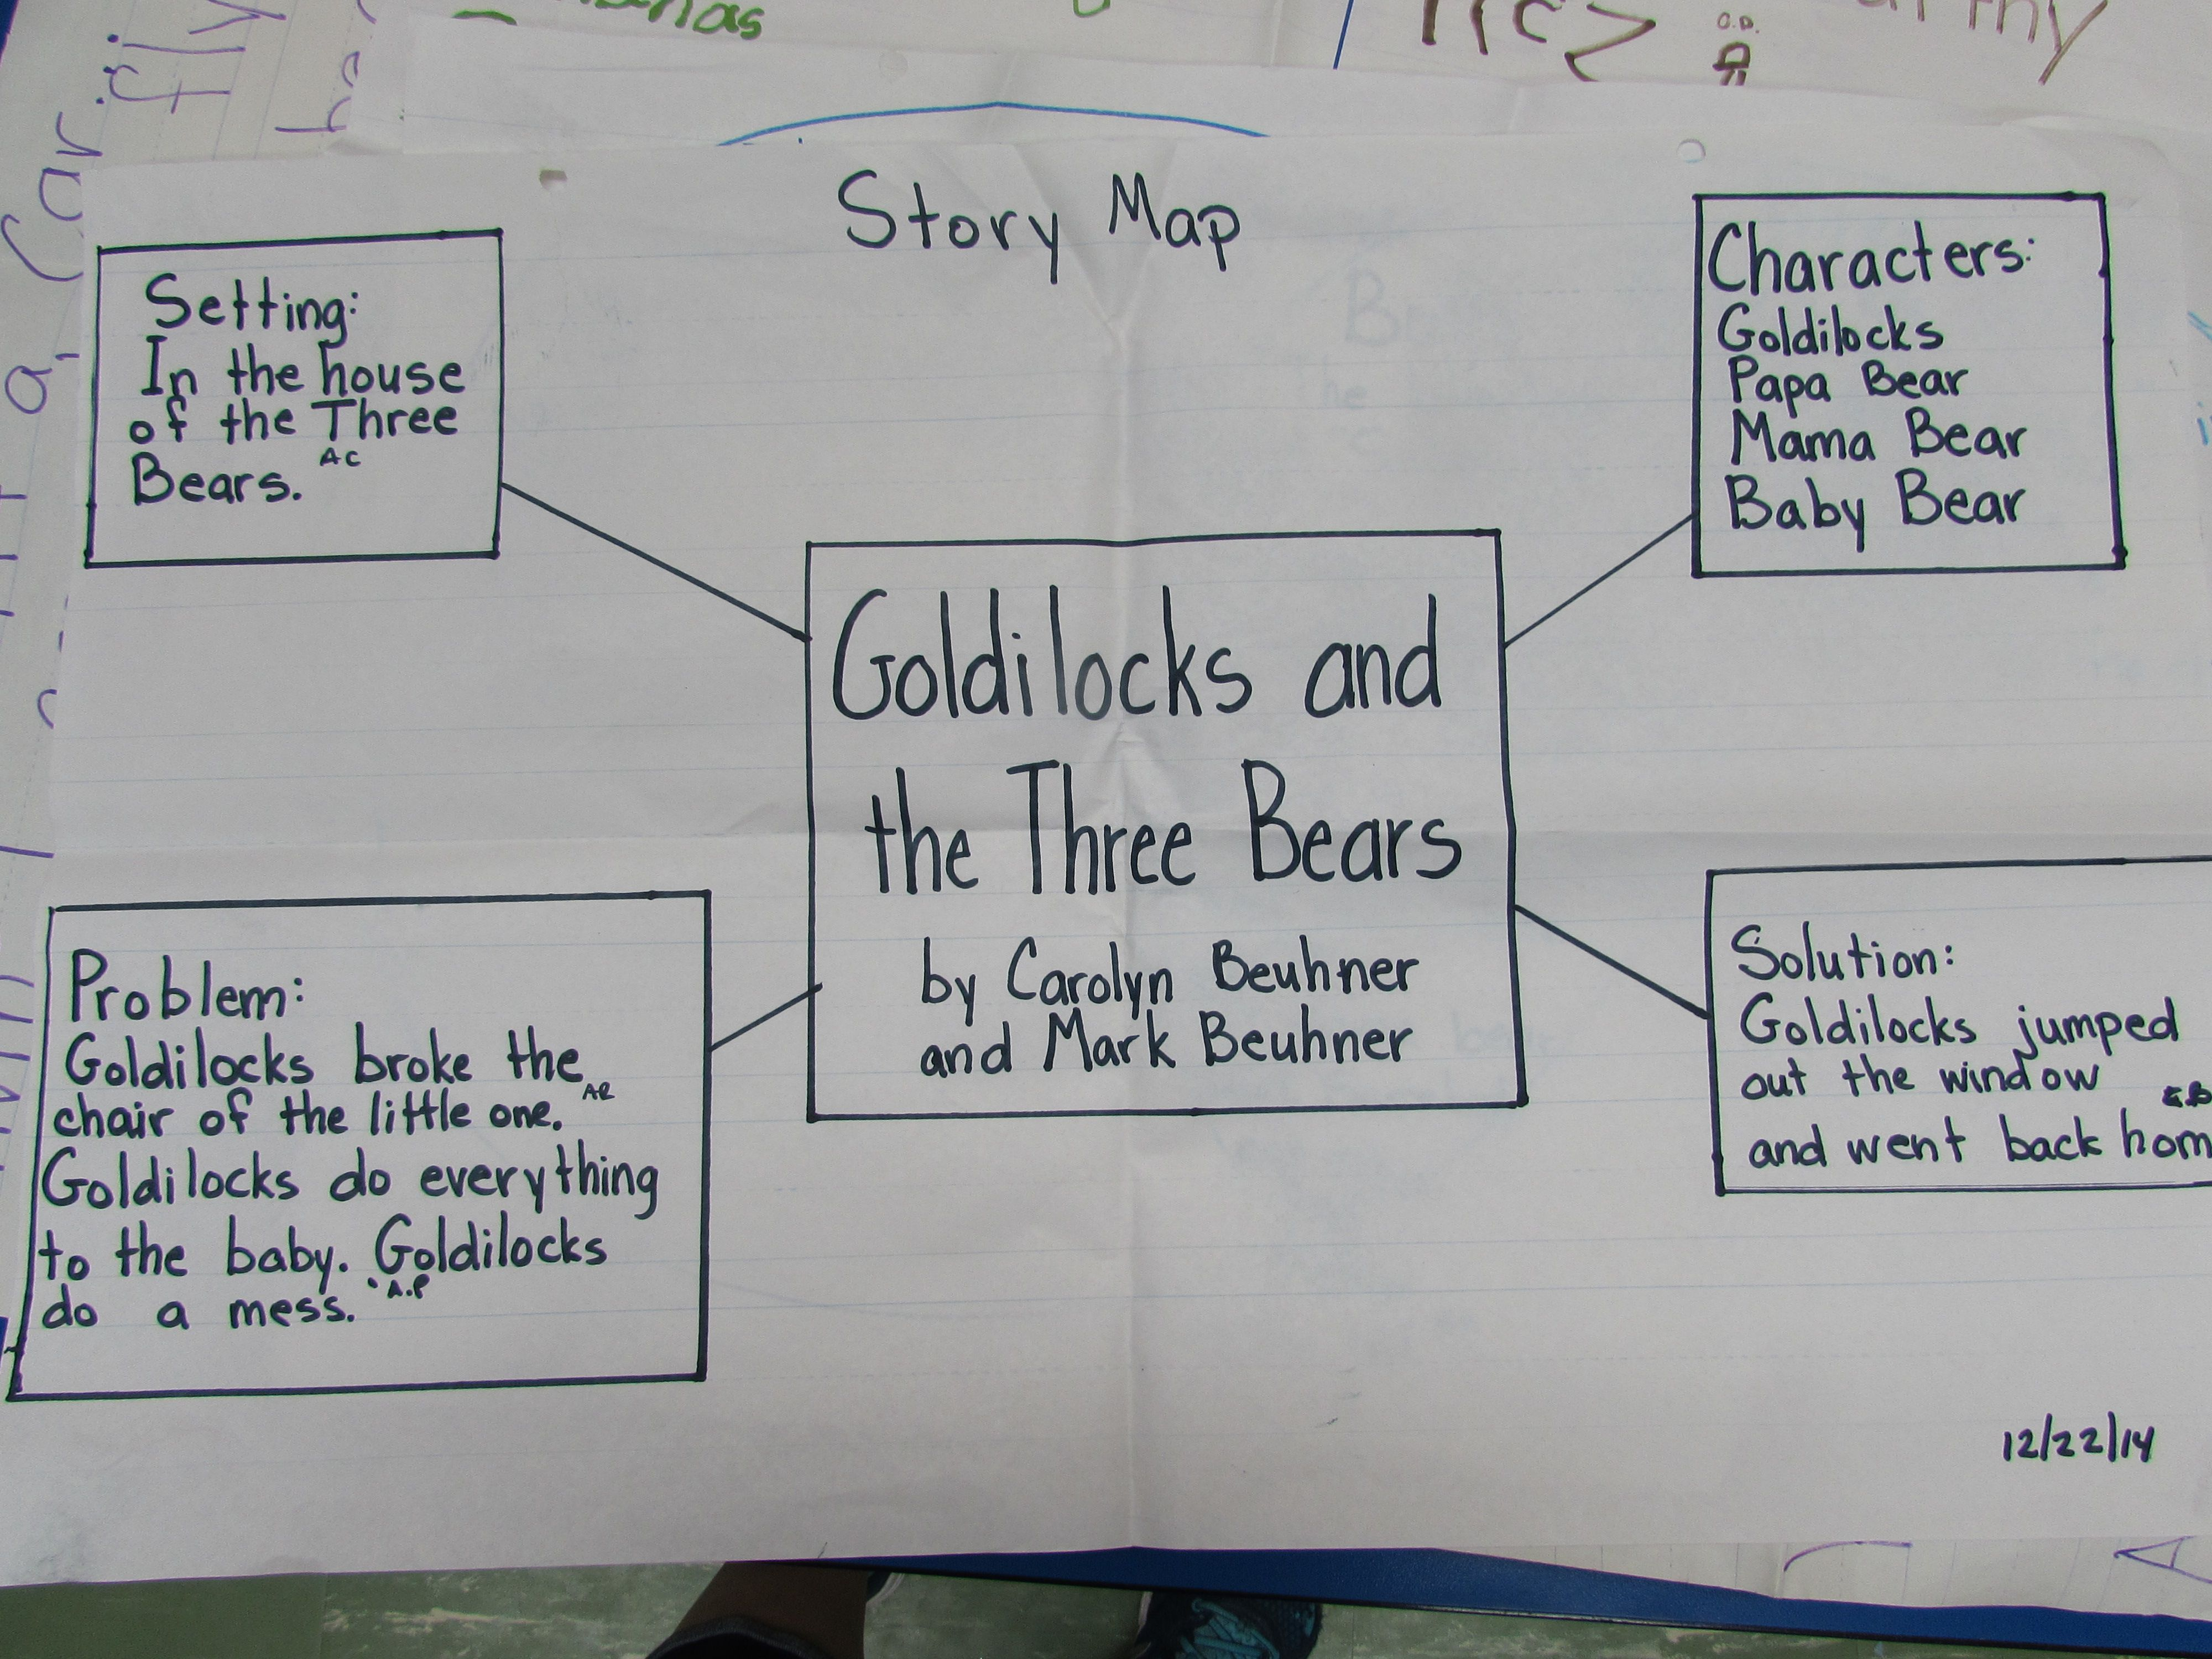 Story Map Of Goldilocks And The Three Bears By Mark And